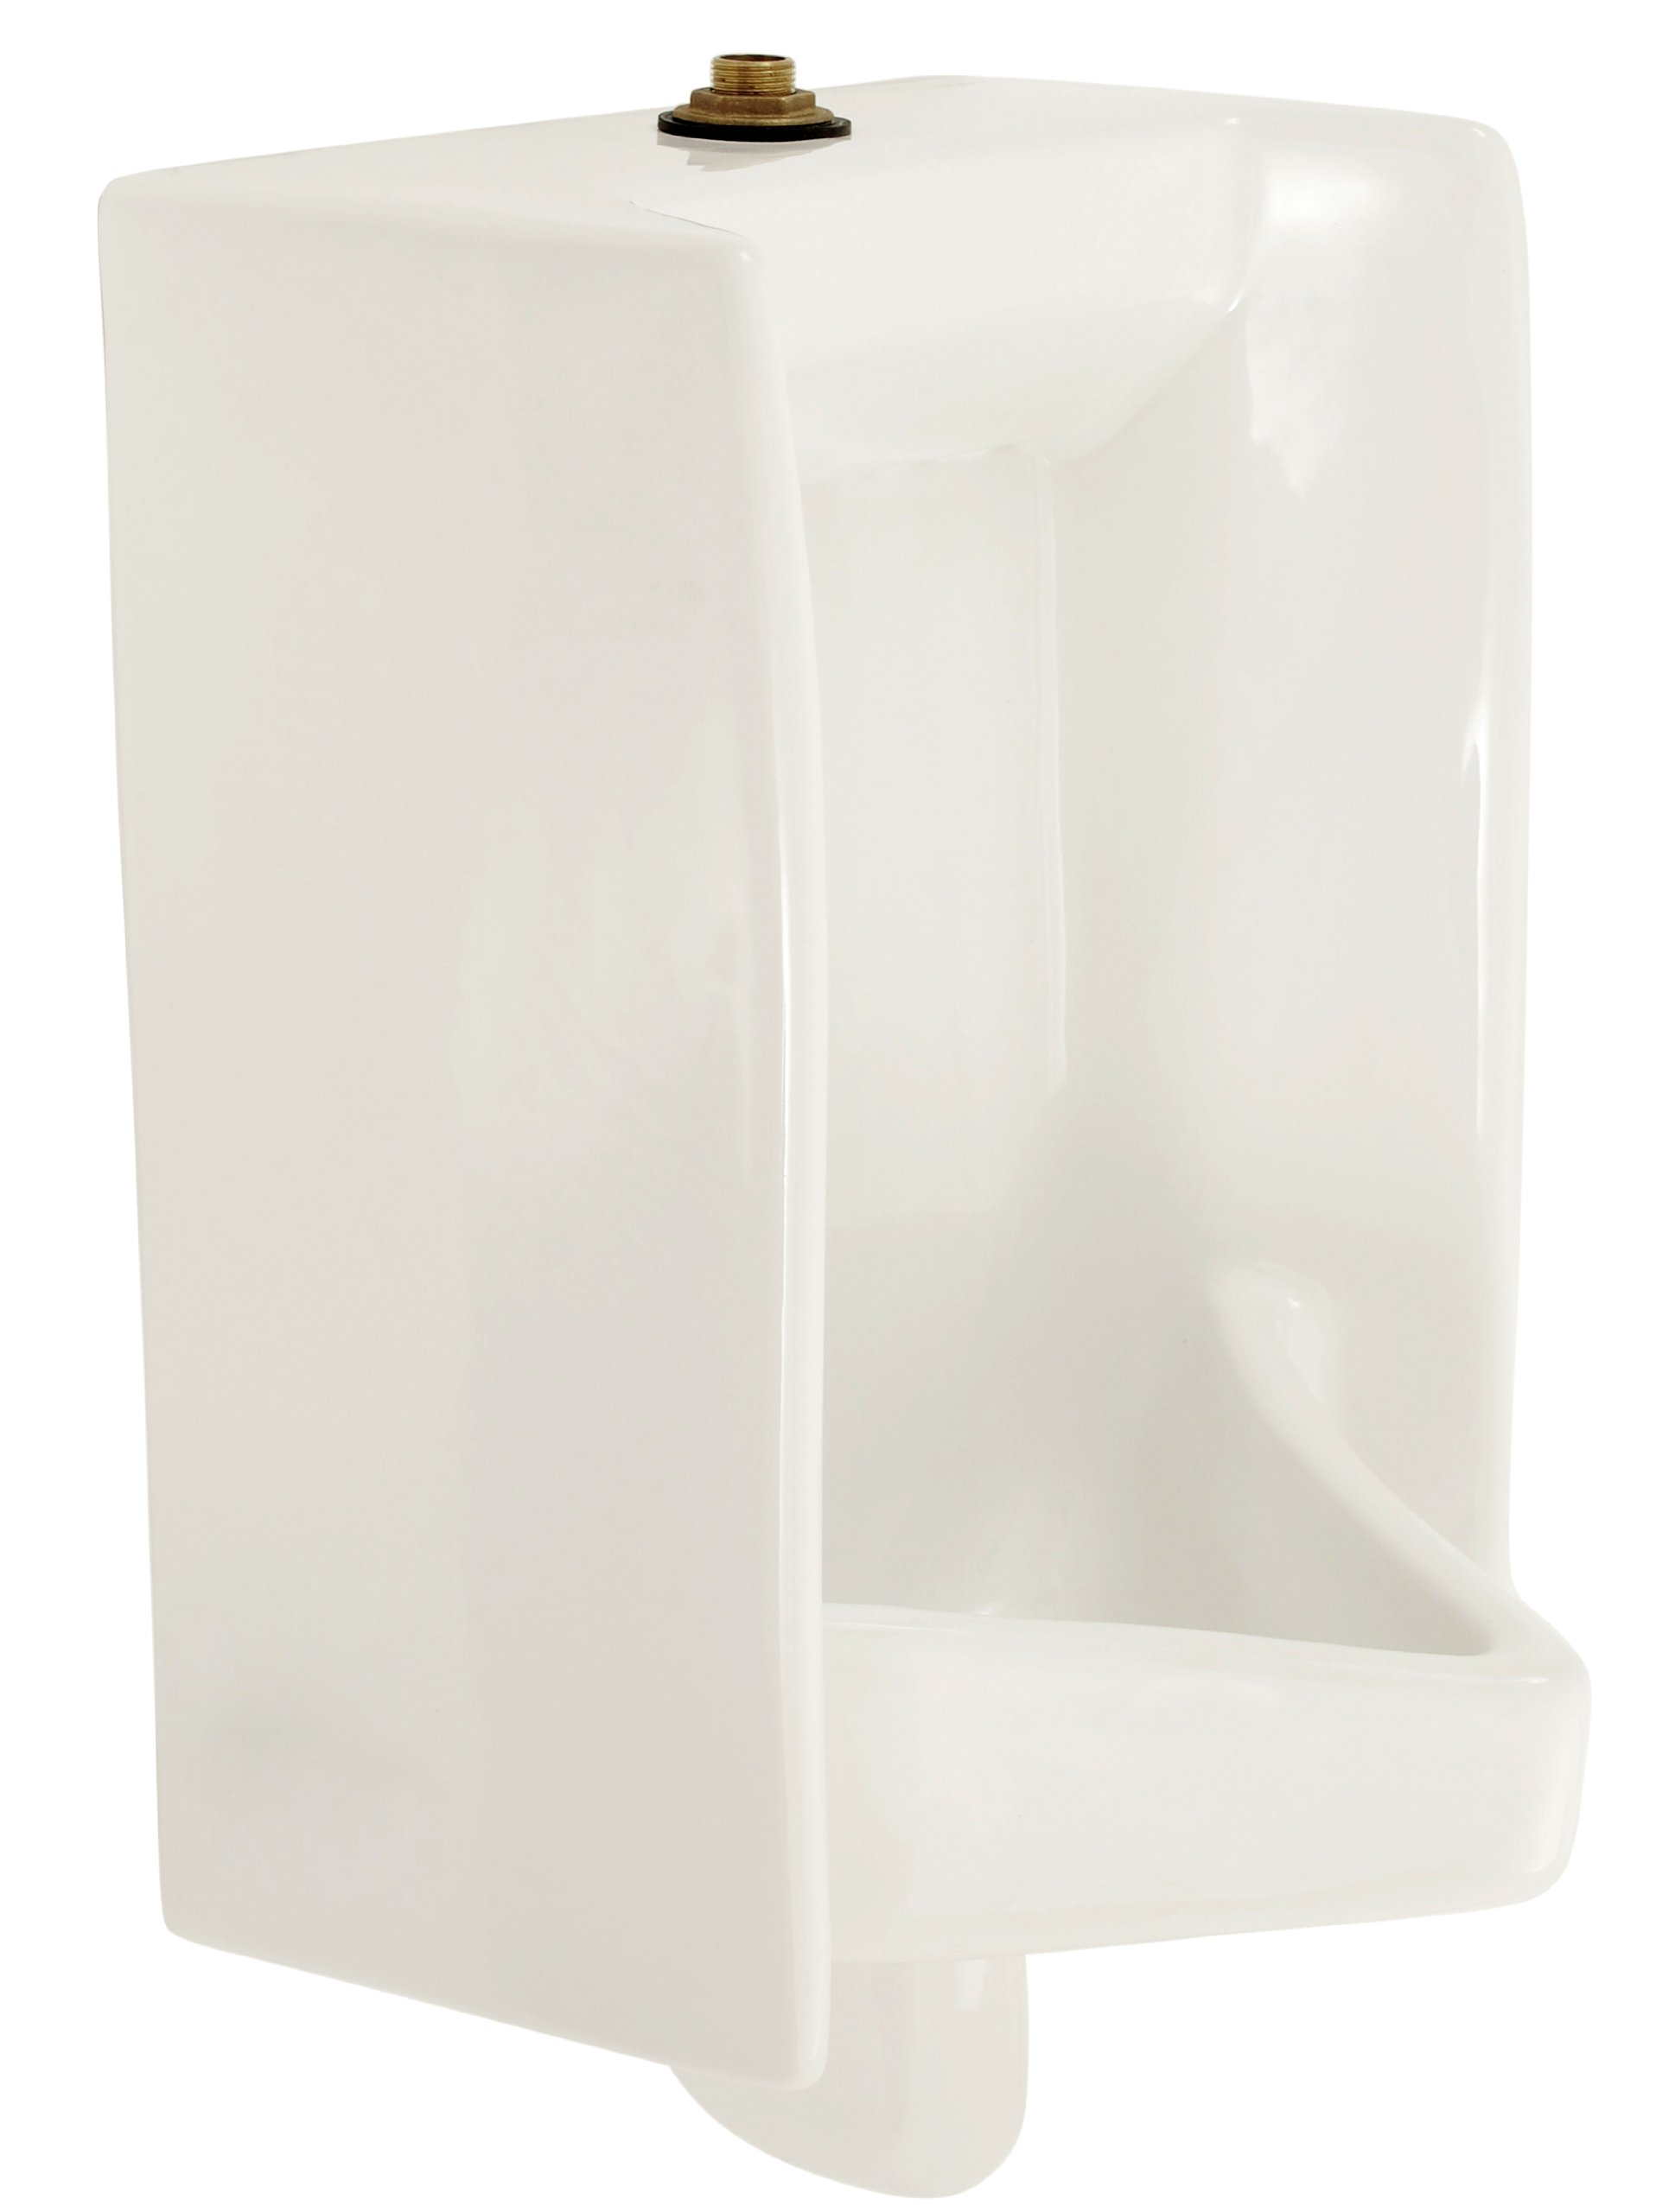 TOTO UT447E#01 Commercial Washout Urinal With Top Spud, Cotton White